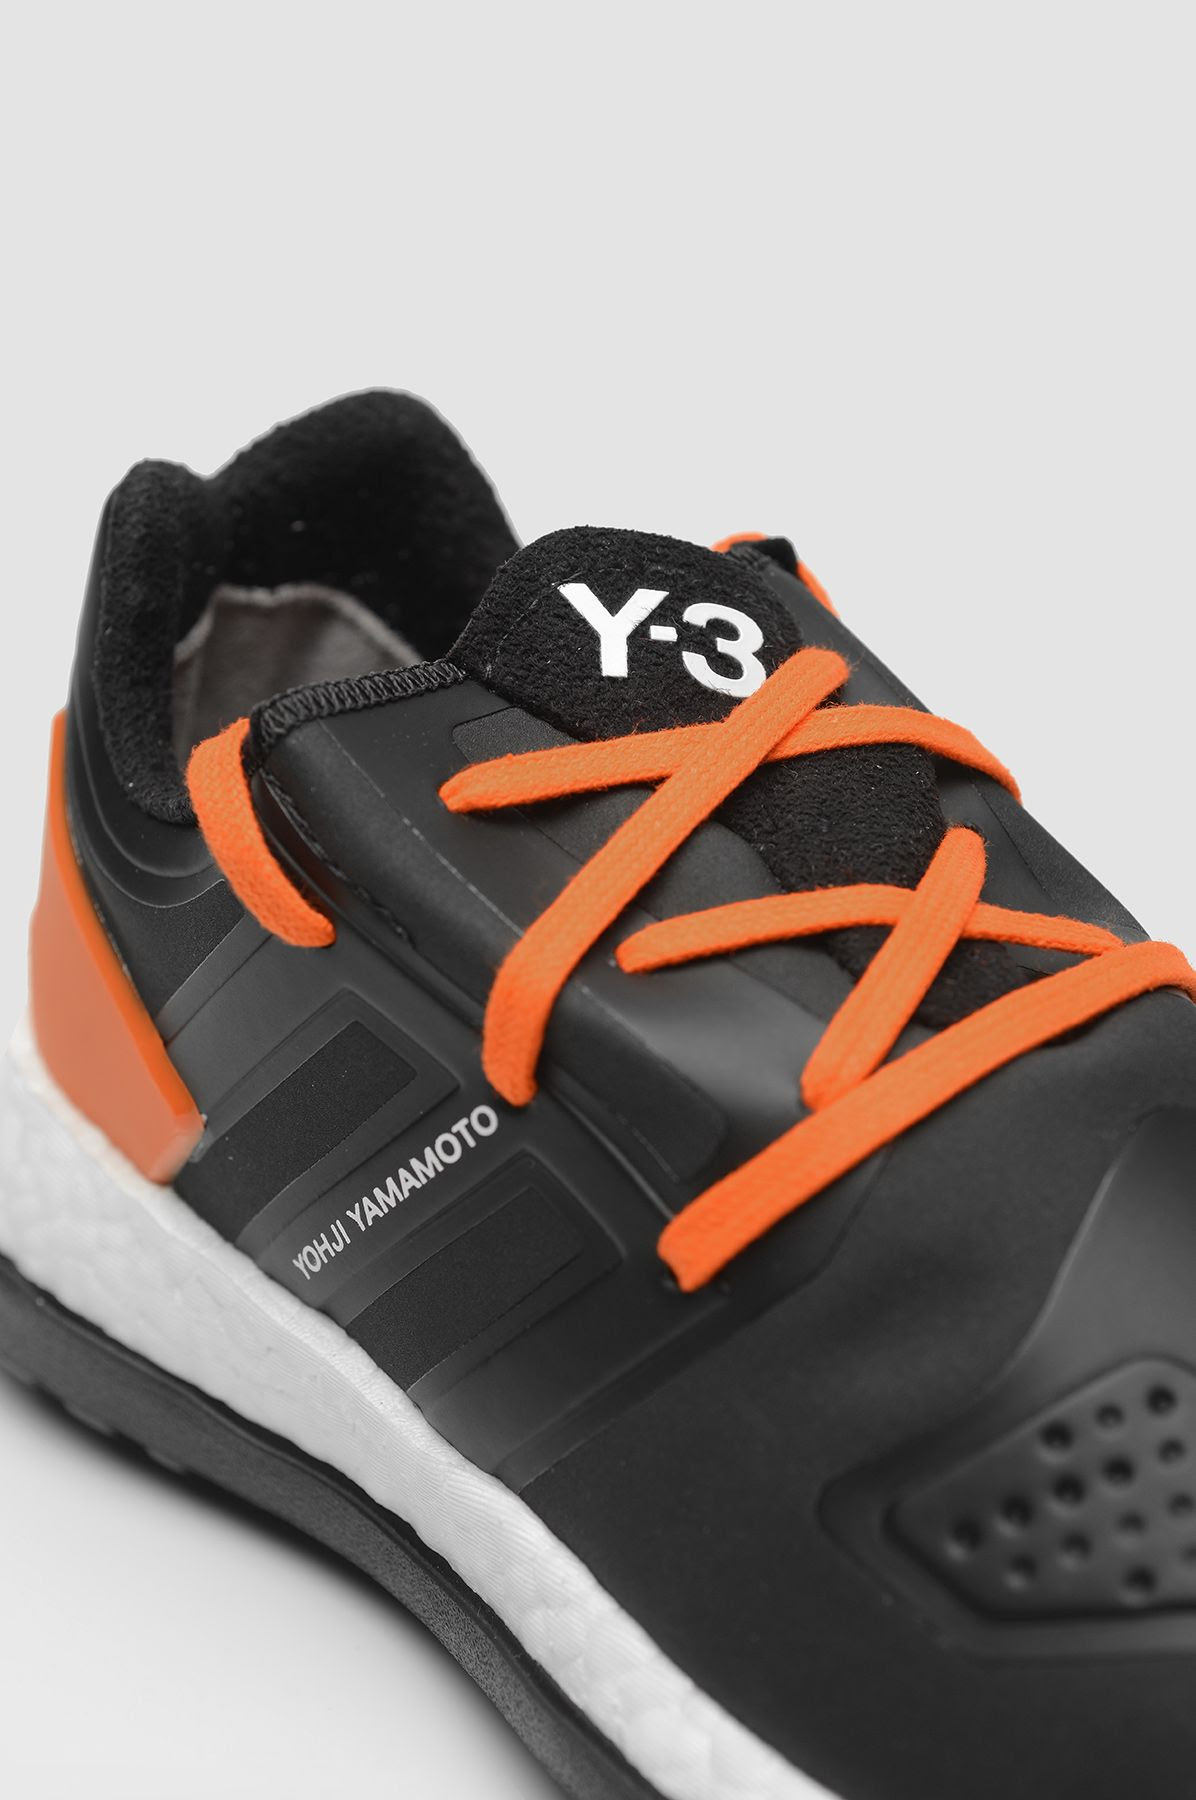 y3-pure-boost-zg-black-orange-4